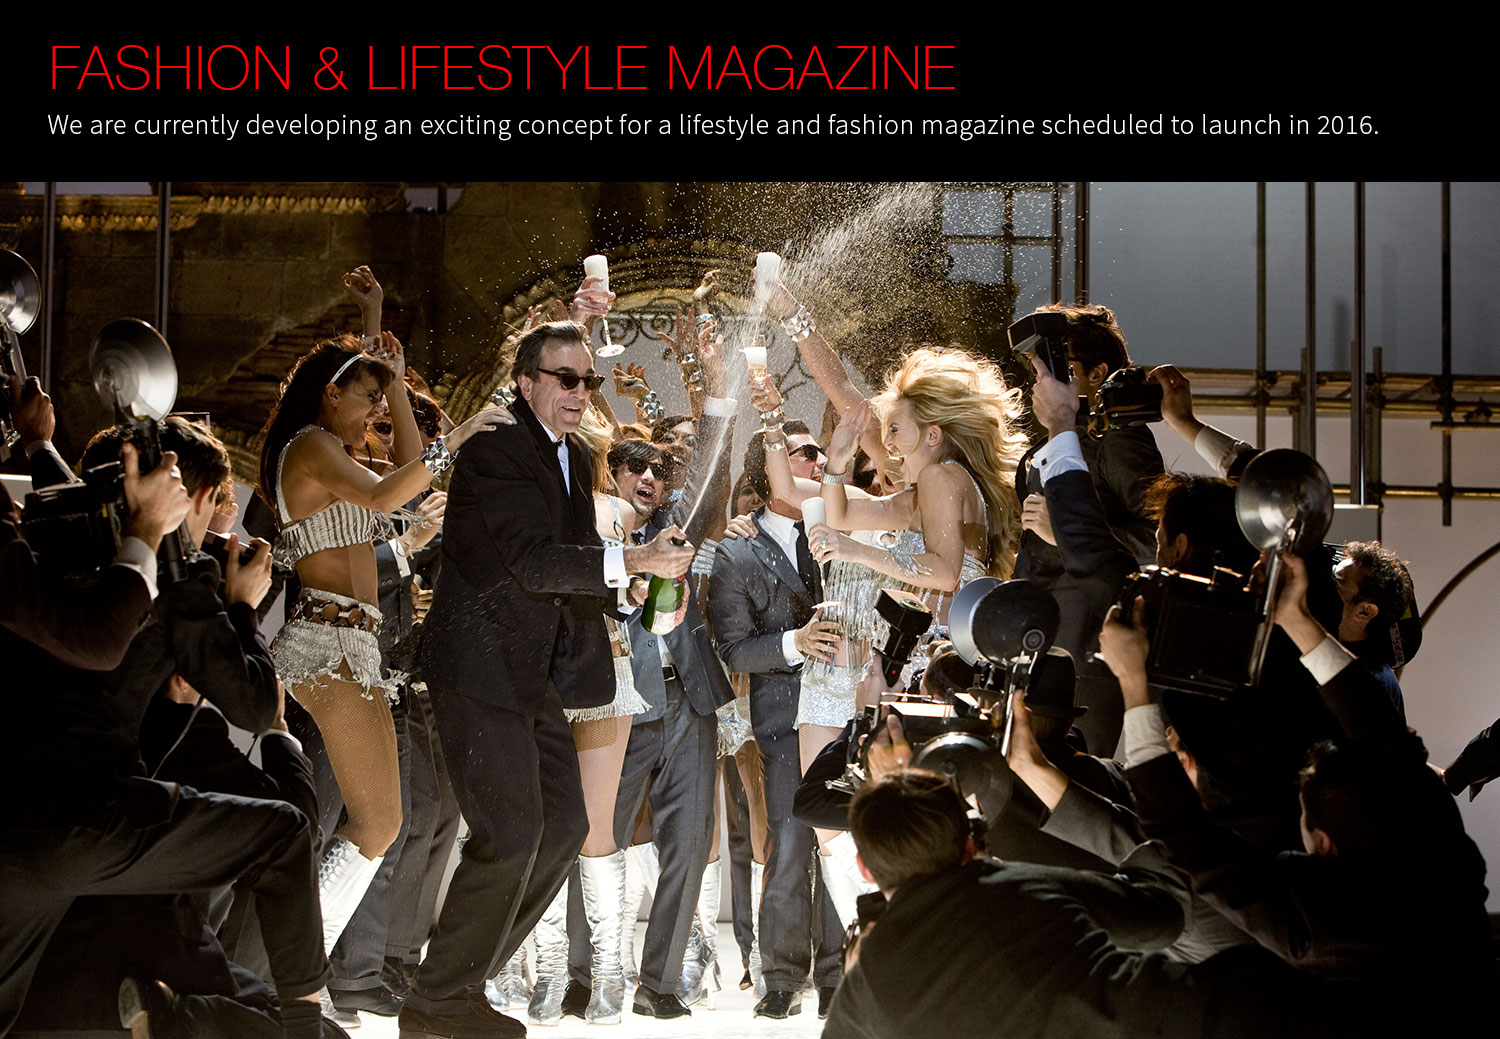 Fashion & Lifestyle Magazine